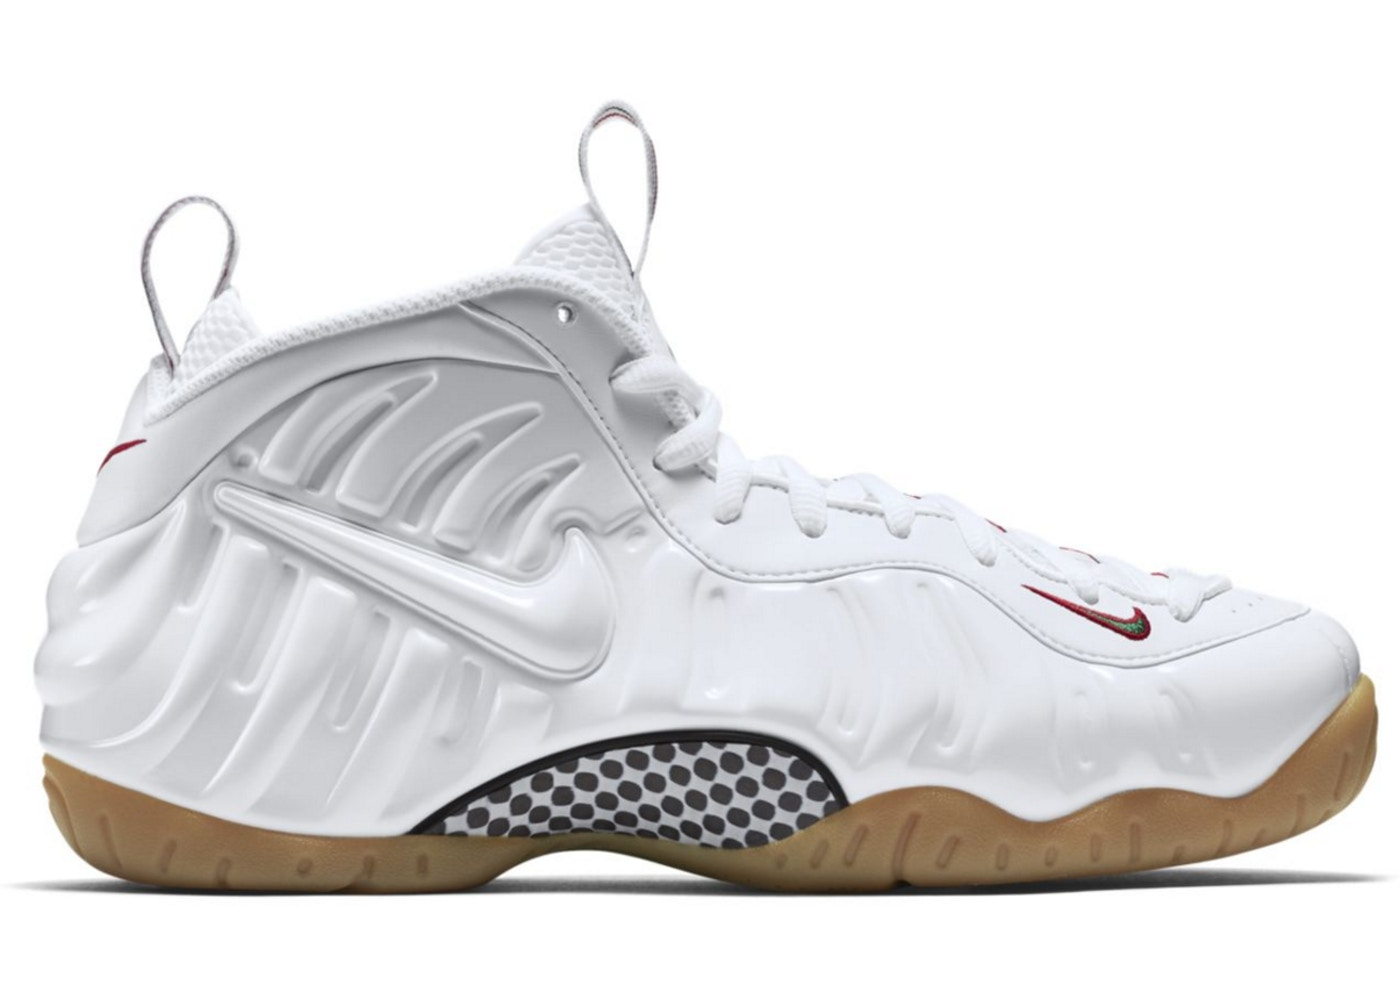 2c5cbee6327 Air Foamposite Pro White Gucci (GS) - 644792-100